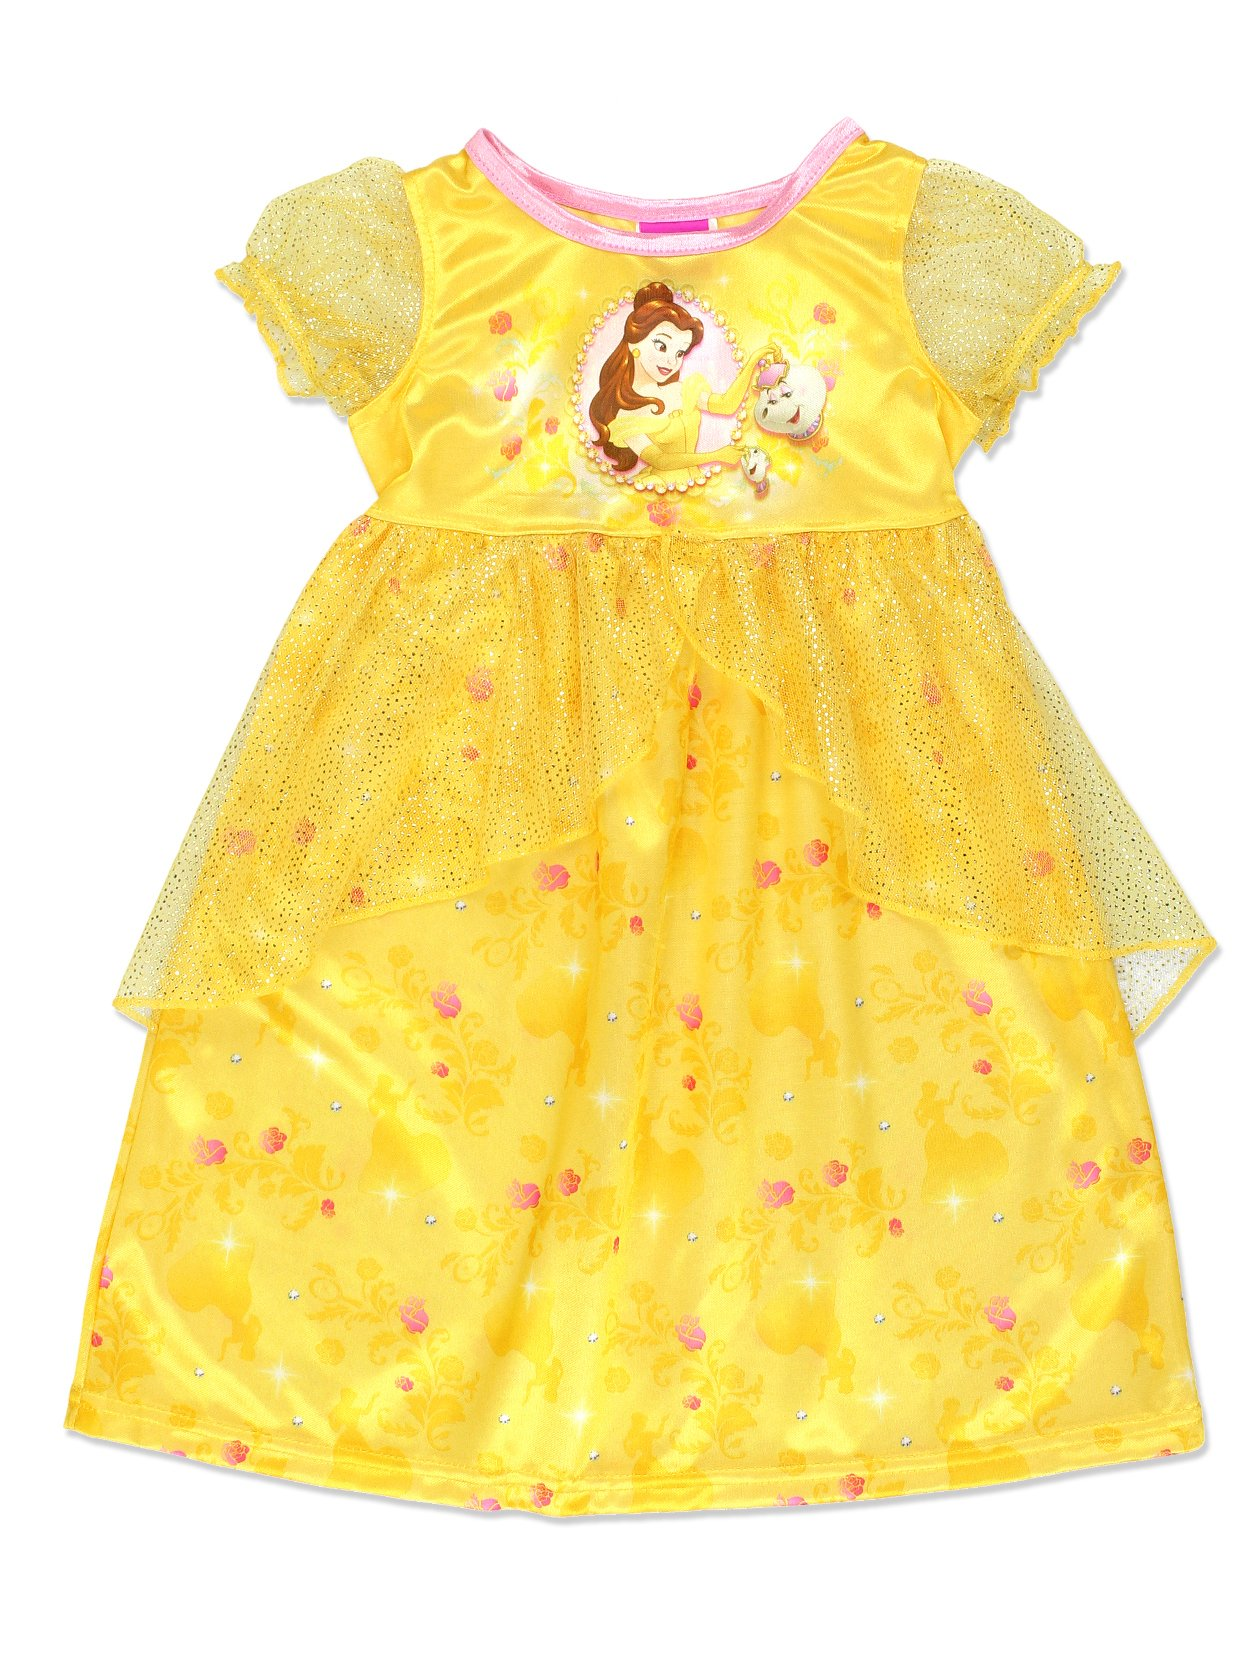 Disney Princess Belle Girls Fantasy Gown Nightgown (2T, Yellow/Multi)